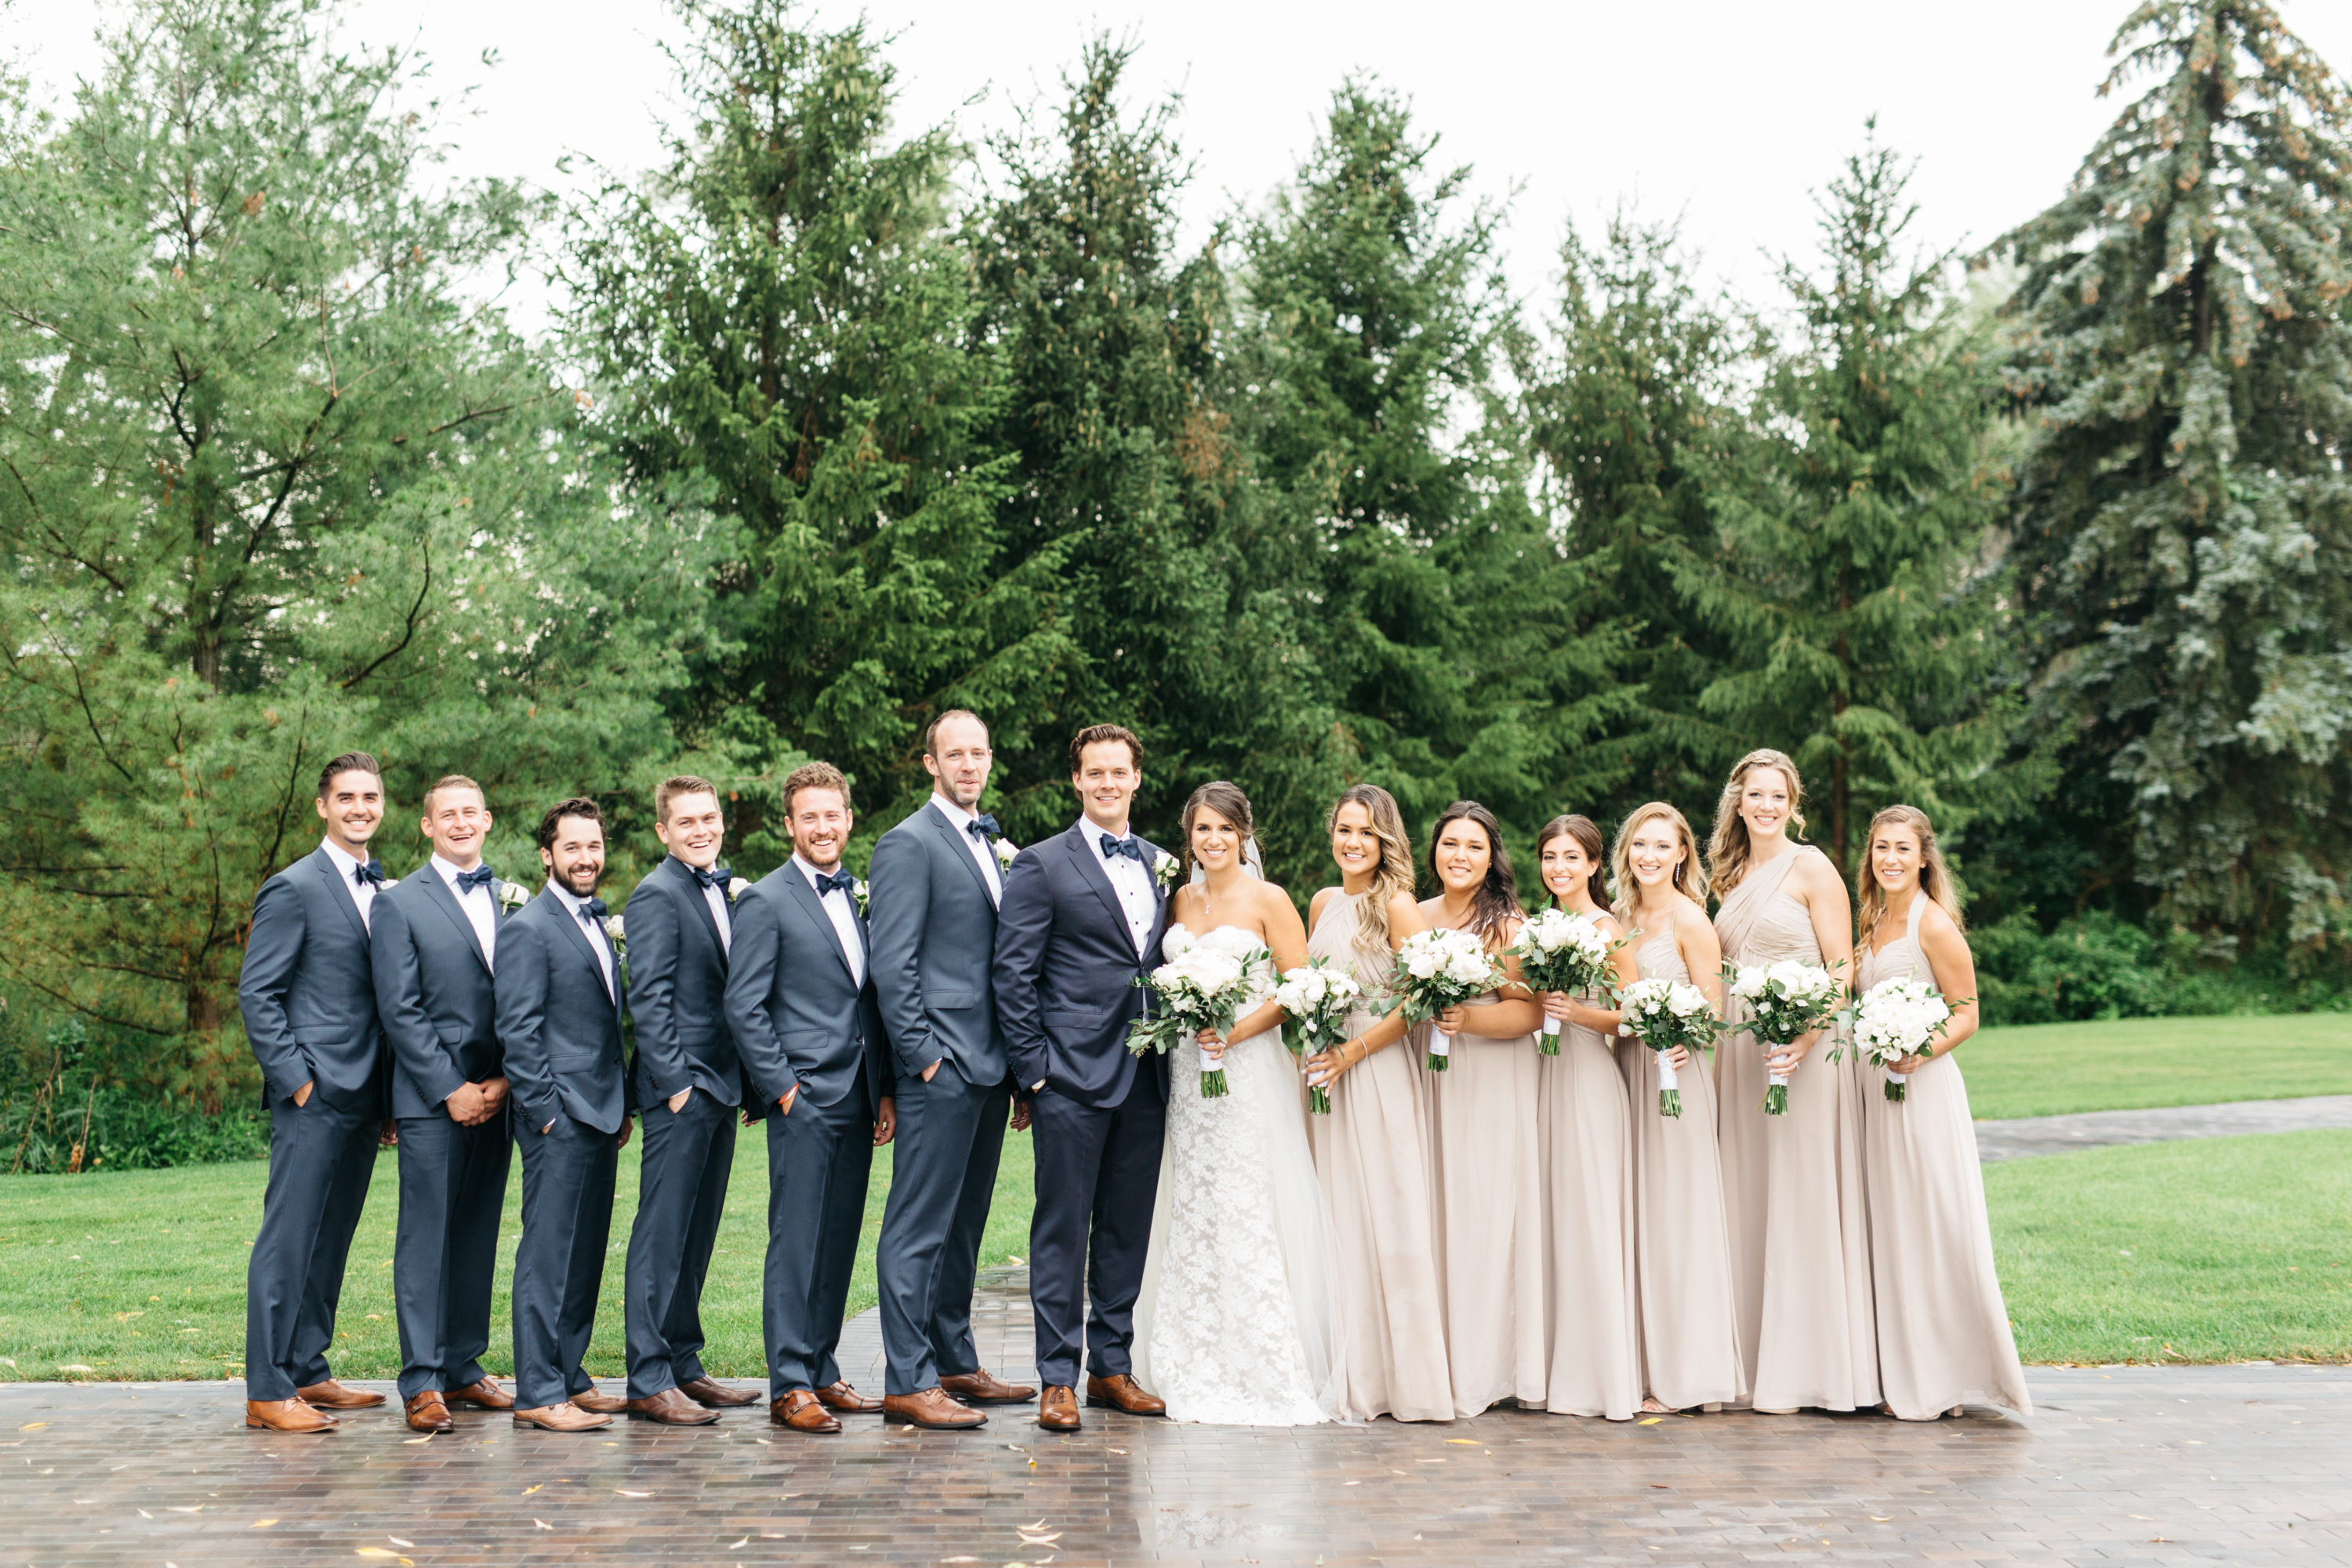 Bridal Party photos taken at The Arlington Estate